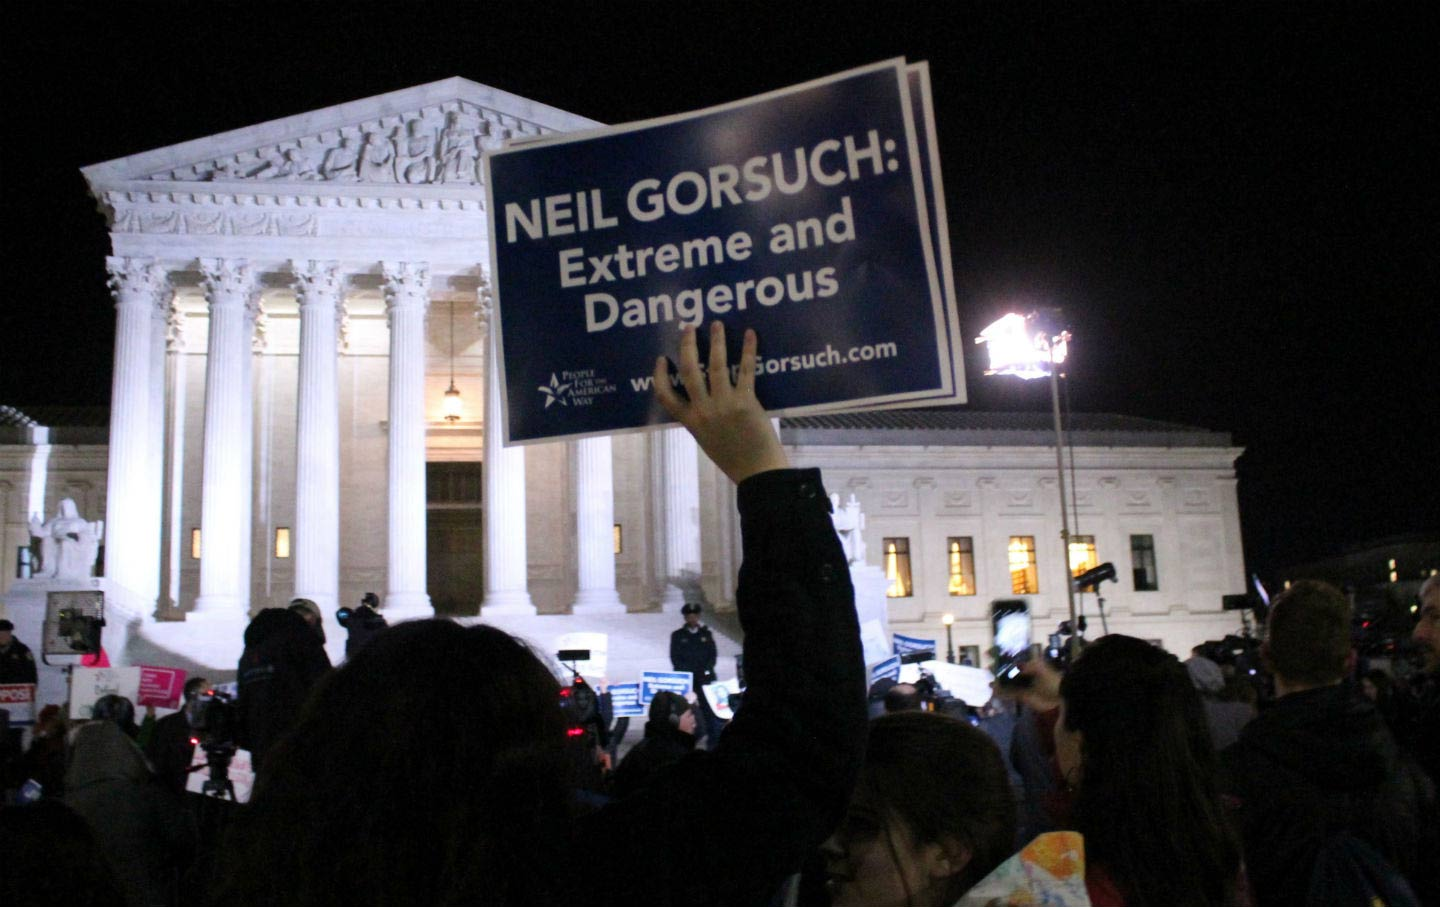 Neil Gorsuch Supreme Court Nomination Protest